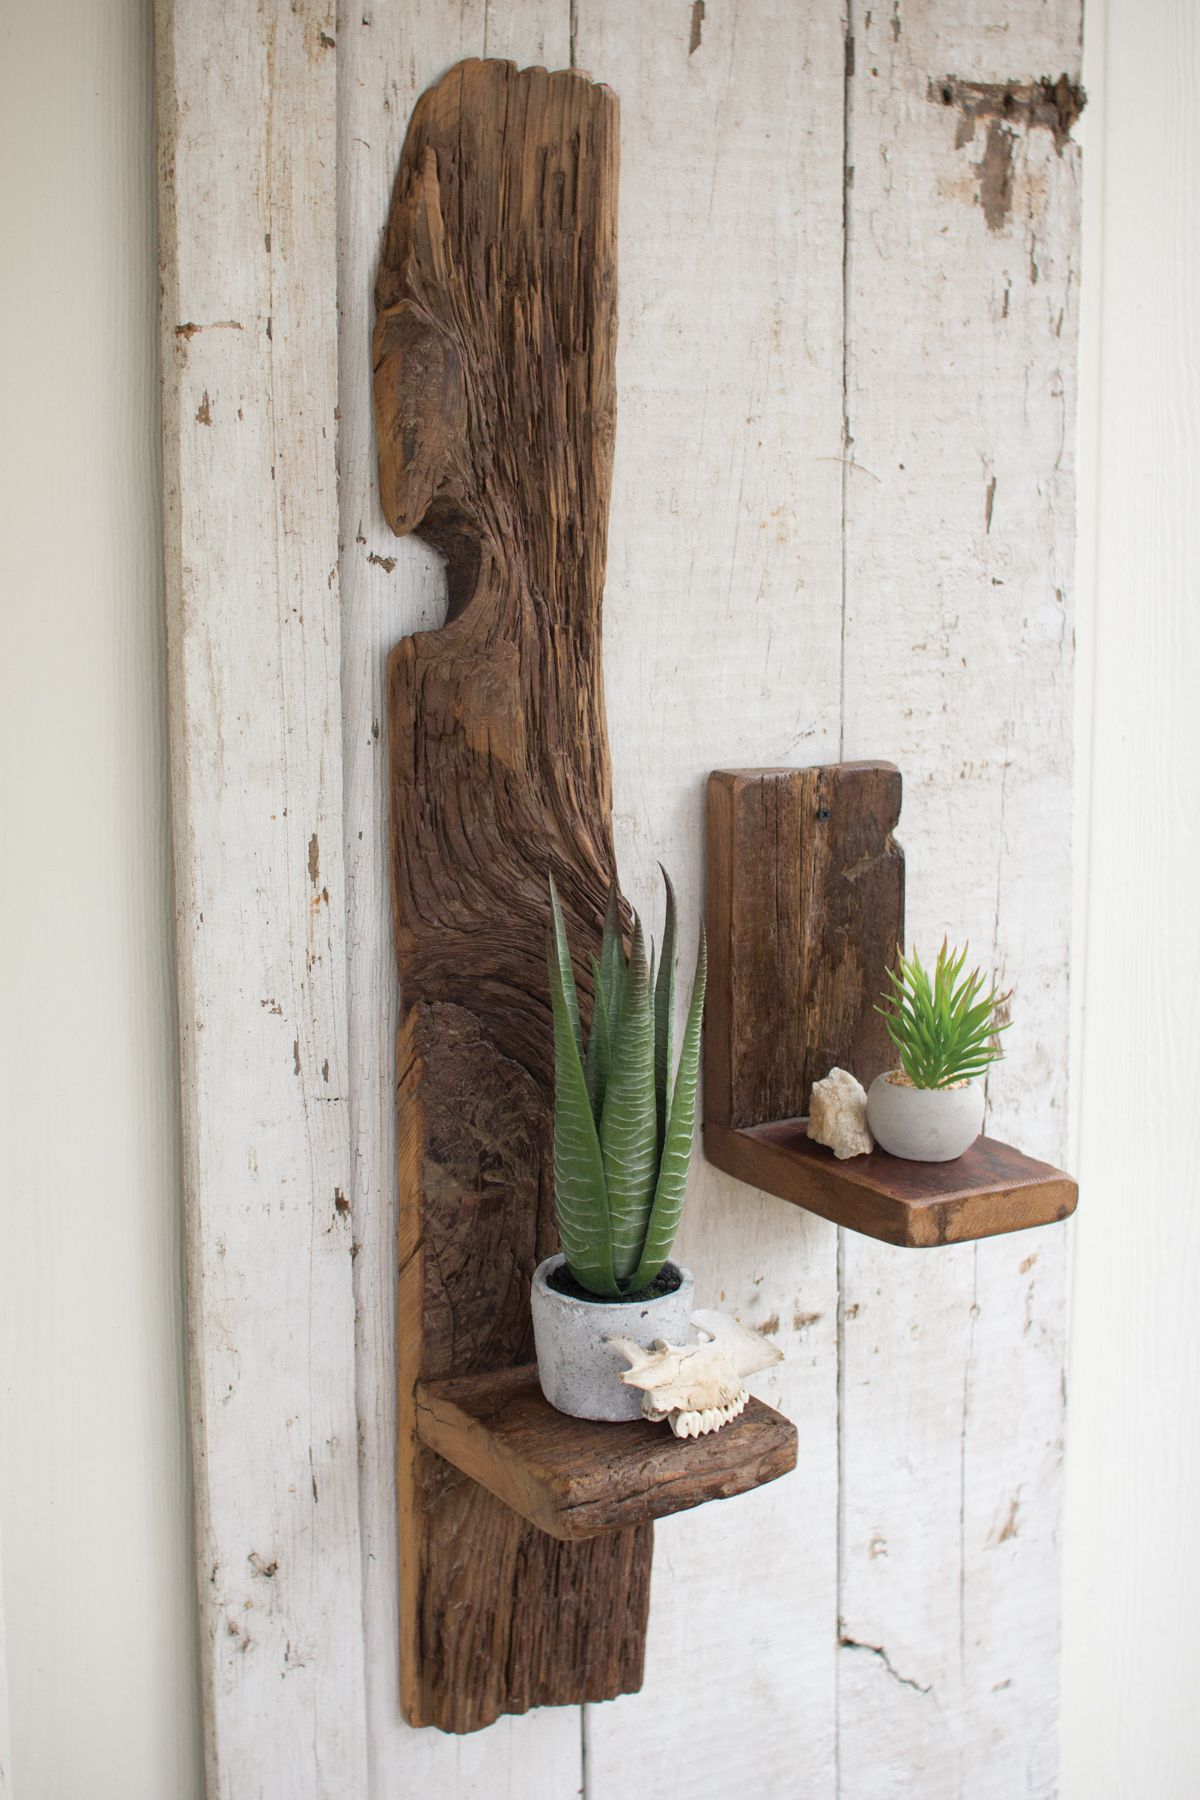 GwG Outlet Small Recycled Wood Wall Shelf NSE1022 - Walmart.com